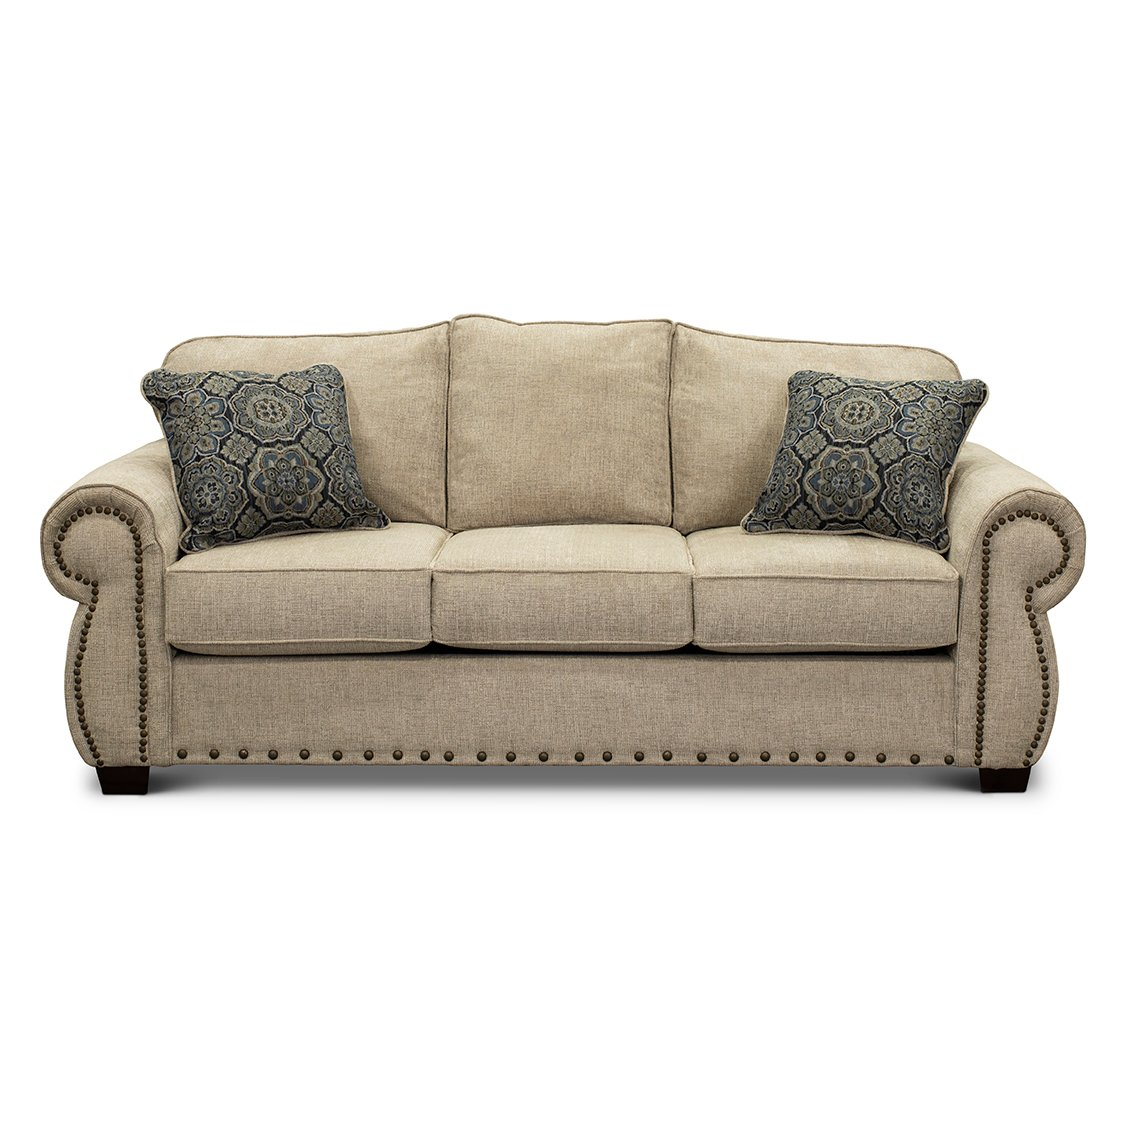 Sofa Bed Couch Shop Sofa Beds Furniture Store Rc Willey